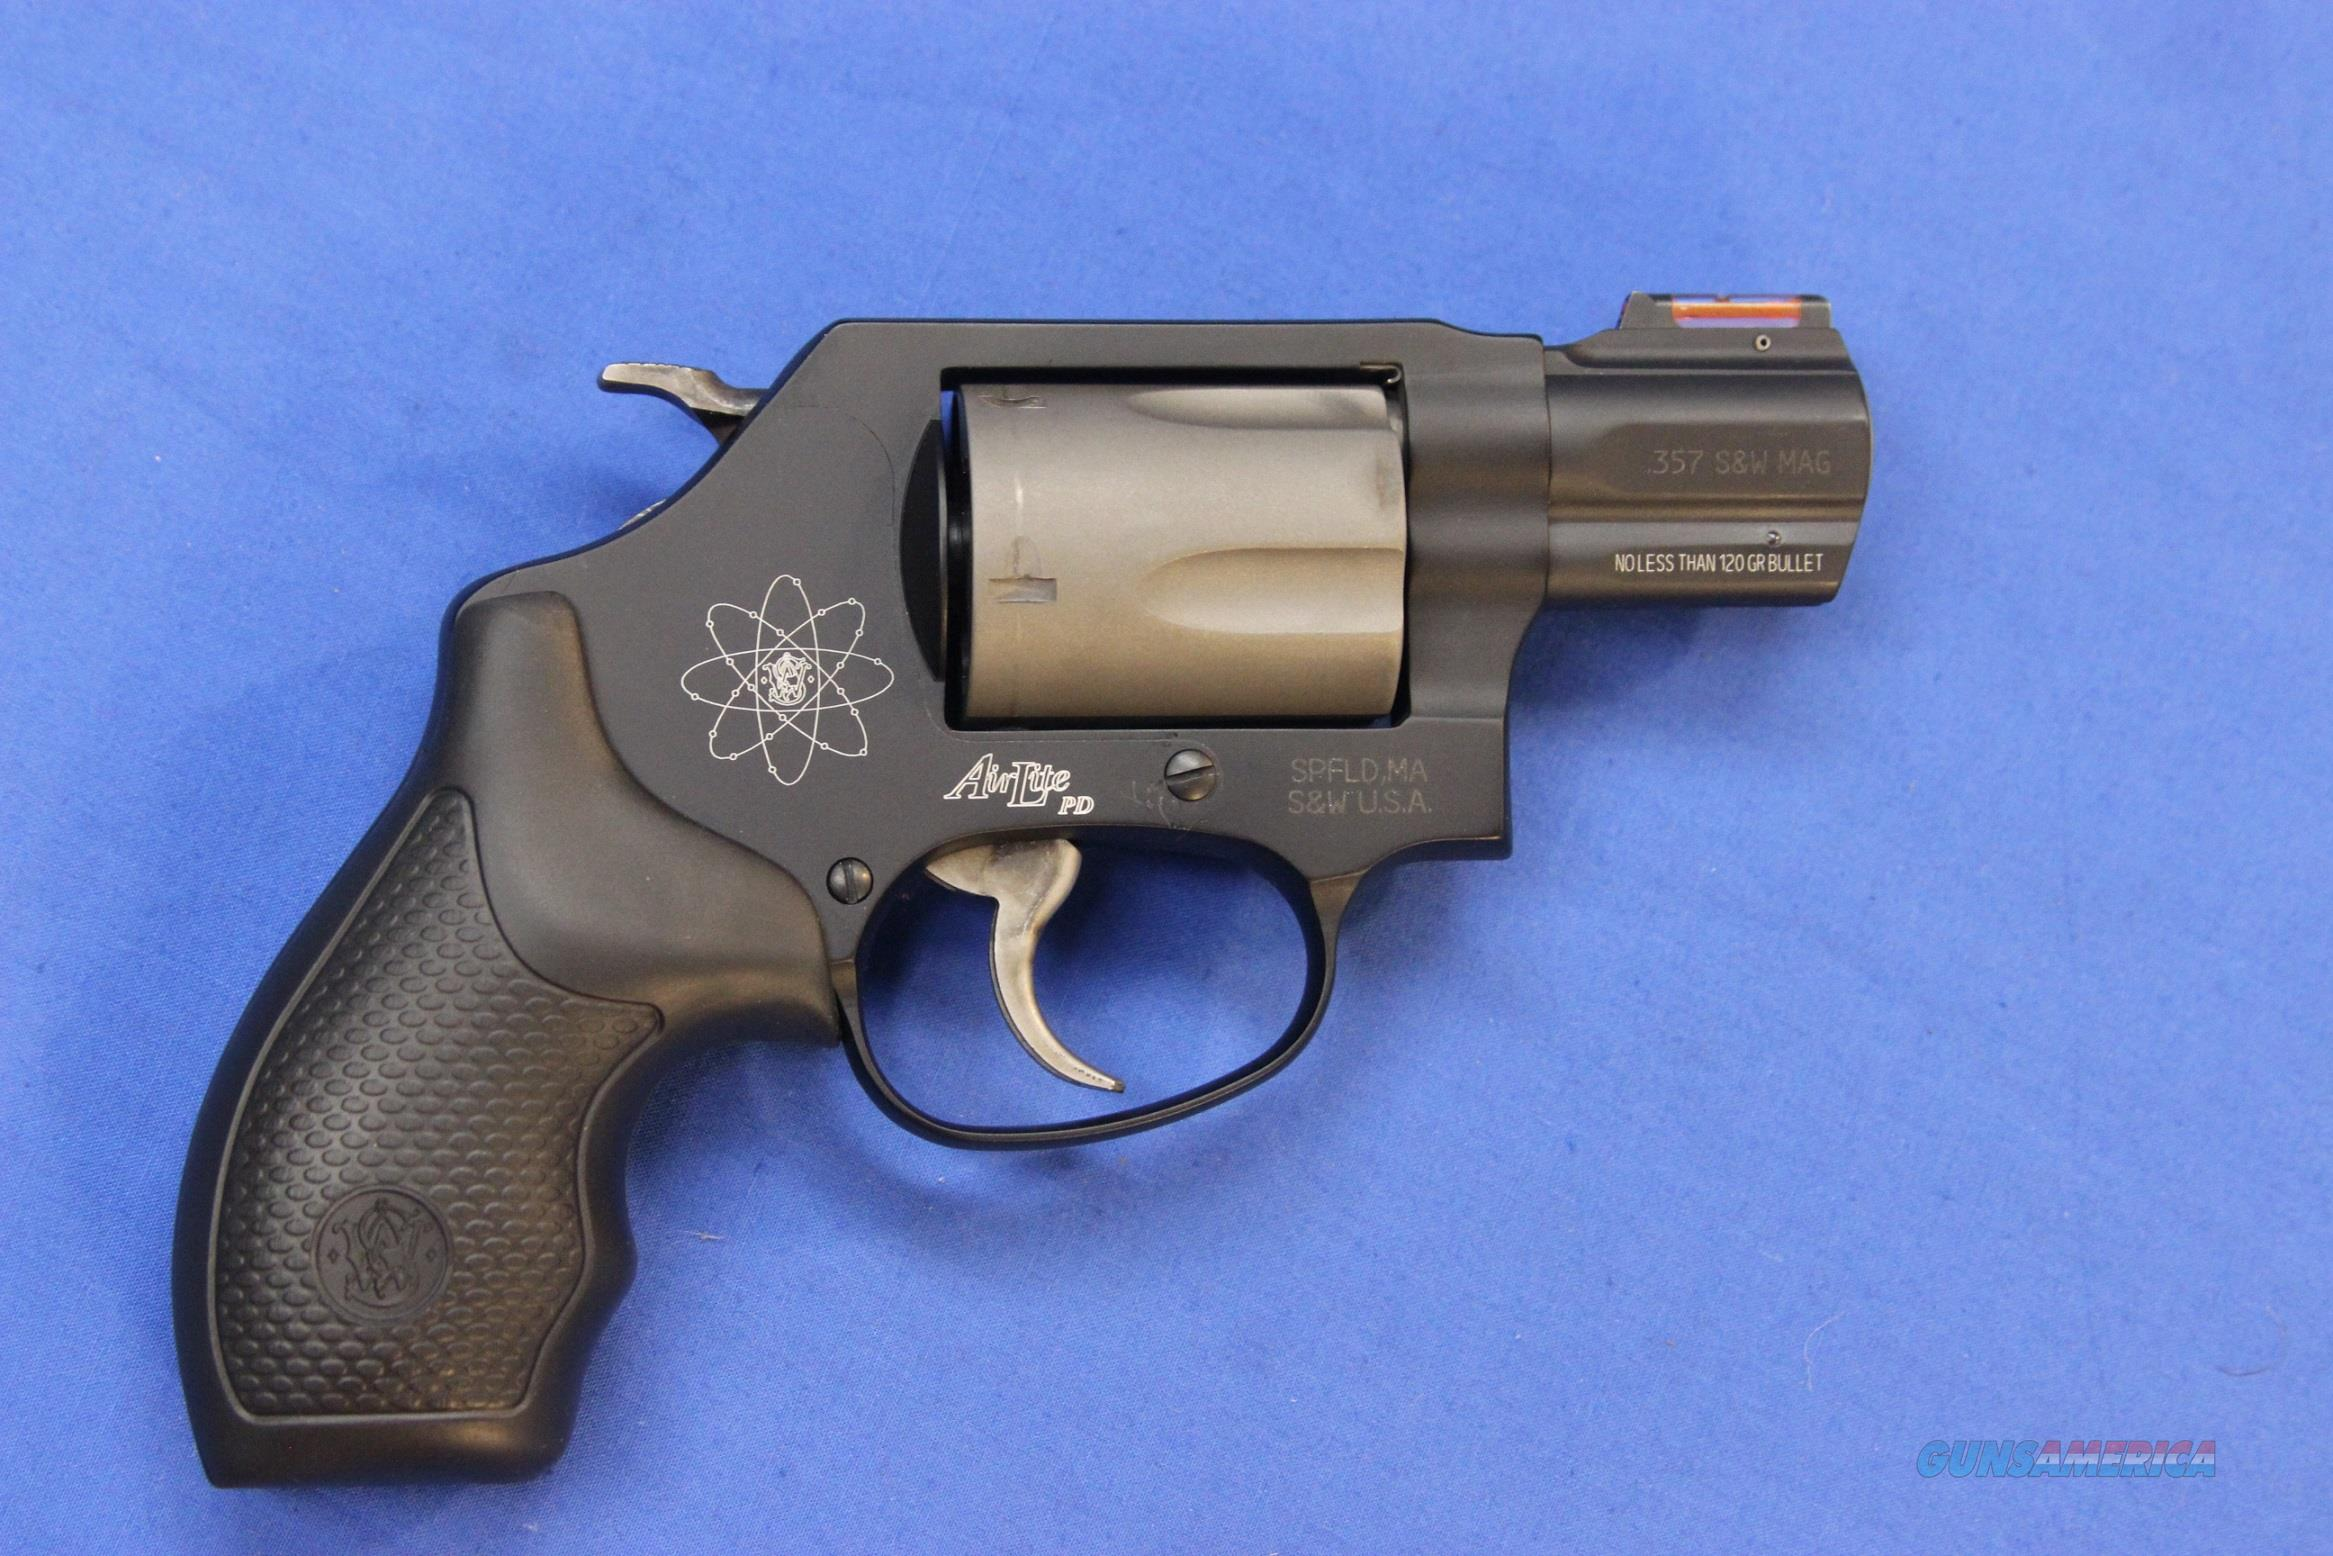 SMITH & WESSON 360PD AIRLITE  357 MAG - NEW!